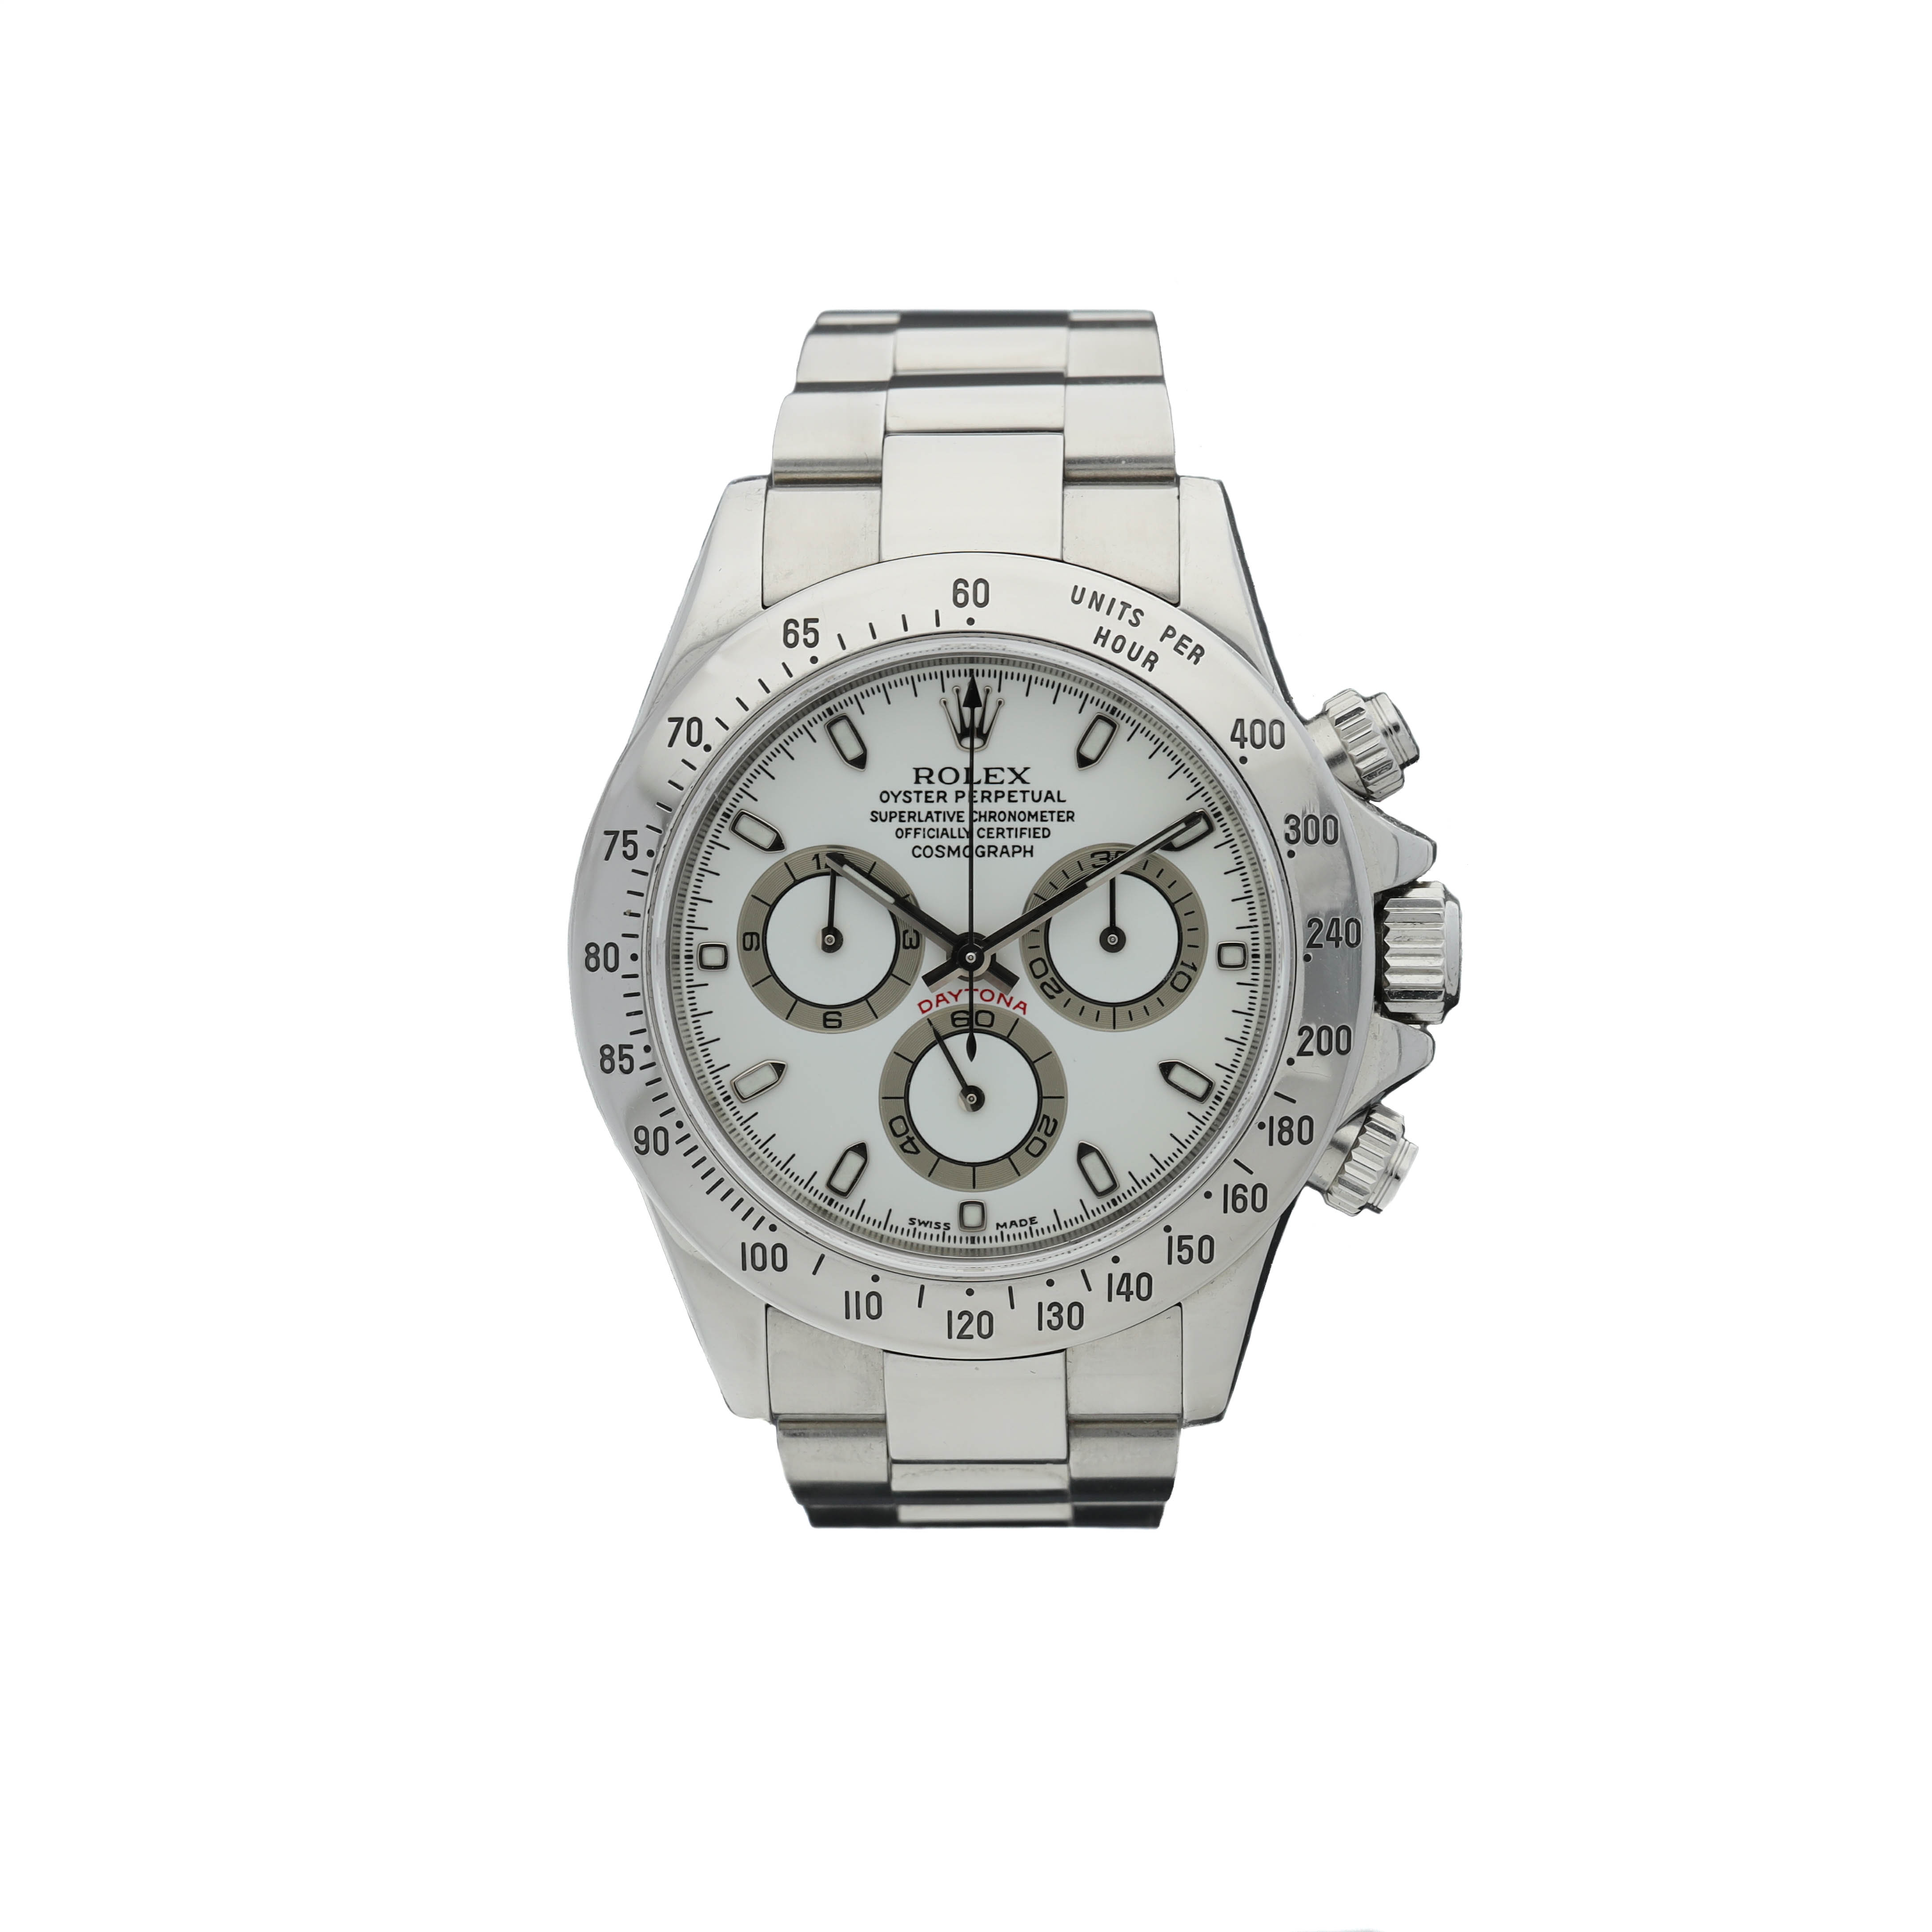 View full screen - View 1 of Lot 451. ROLEX   REFERENCE 116520 DAYTONA   A STAINLESS STEEL AUTOMATIC CHRONOGRAPH WRISTWATCH WITH REGISTERS AND BRACELET, CIRCA 2000.